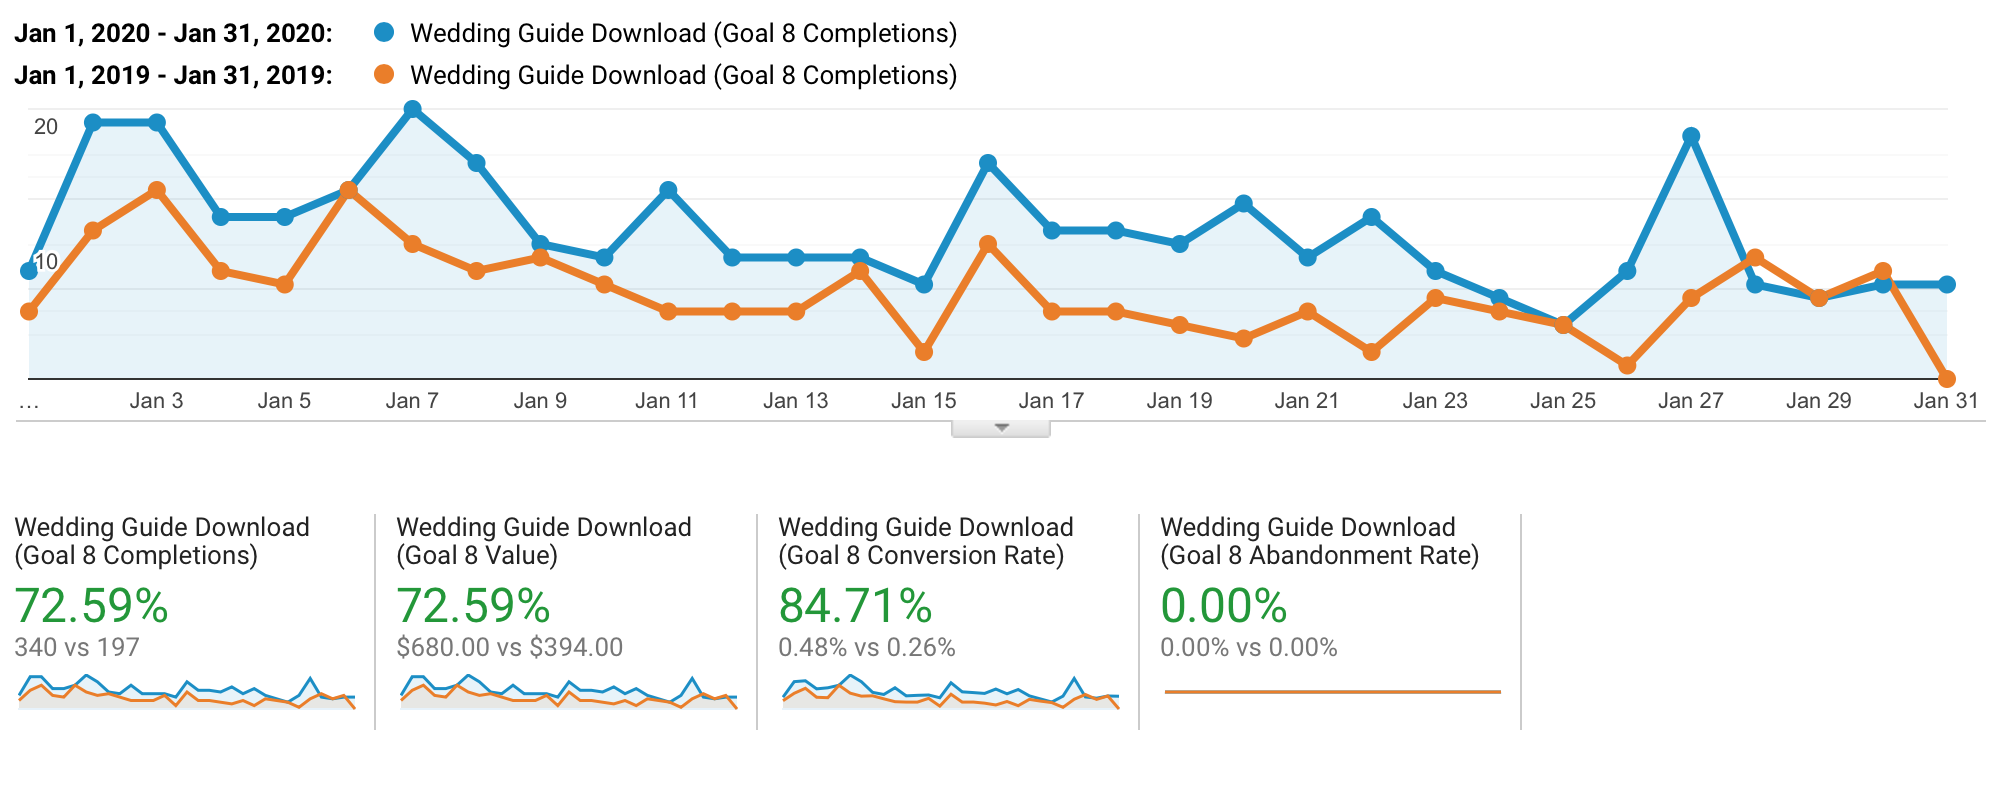 Wedding guide download charts